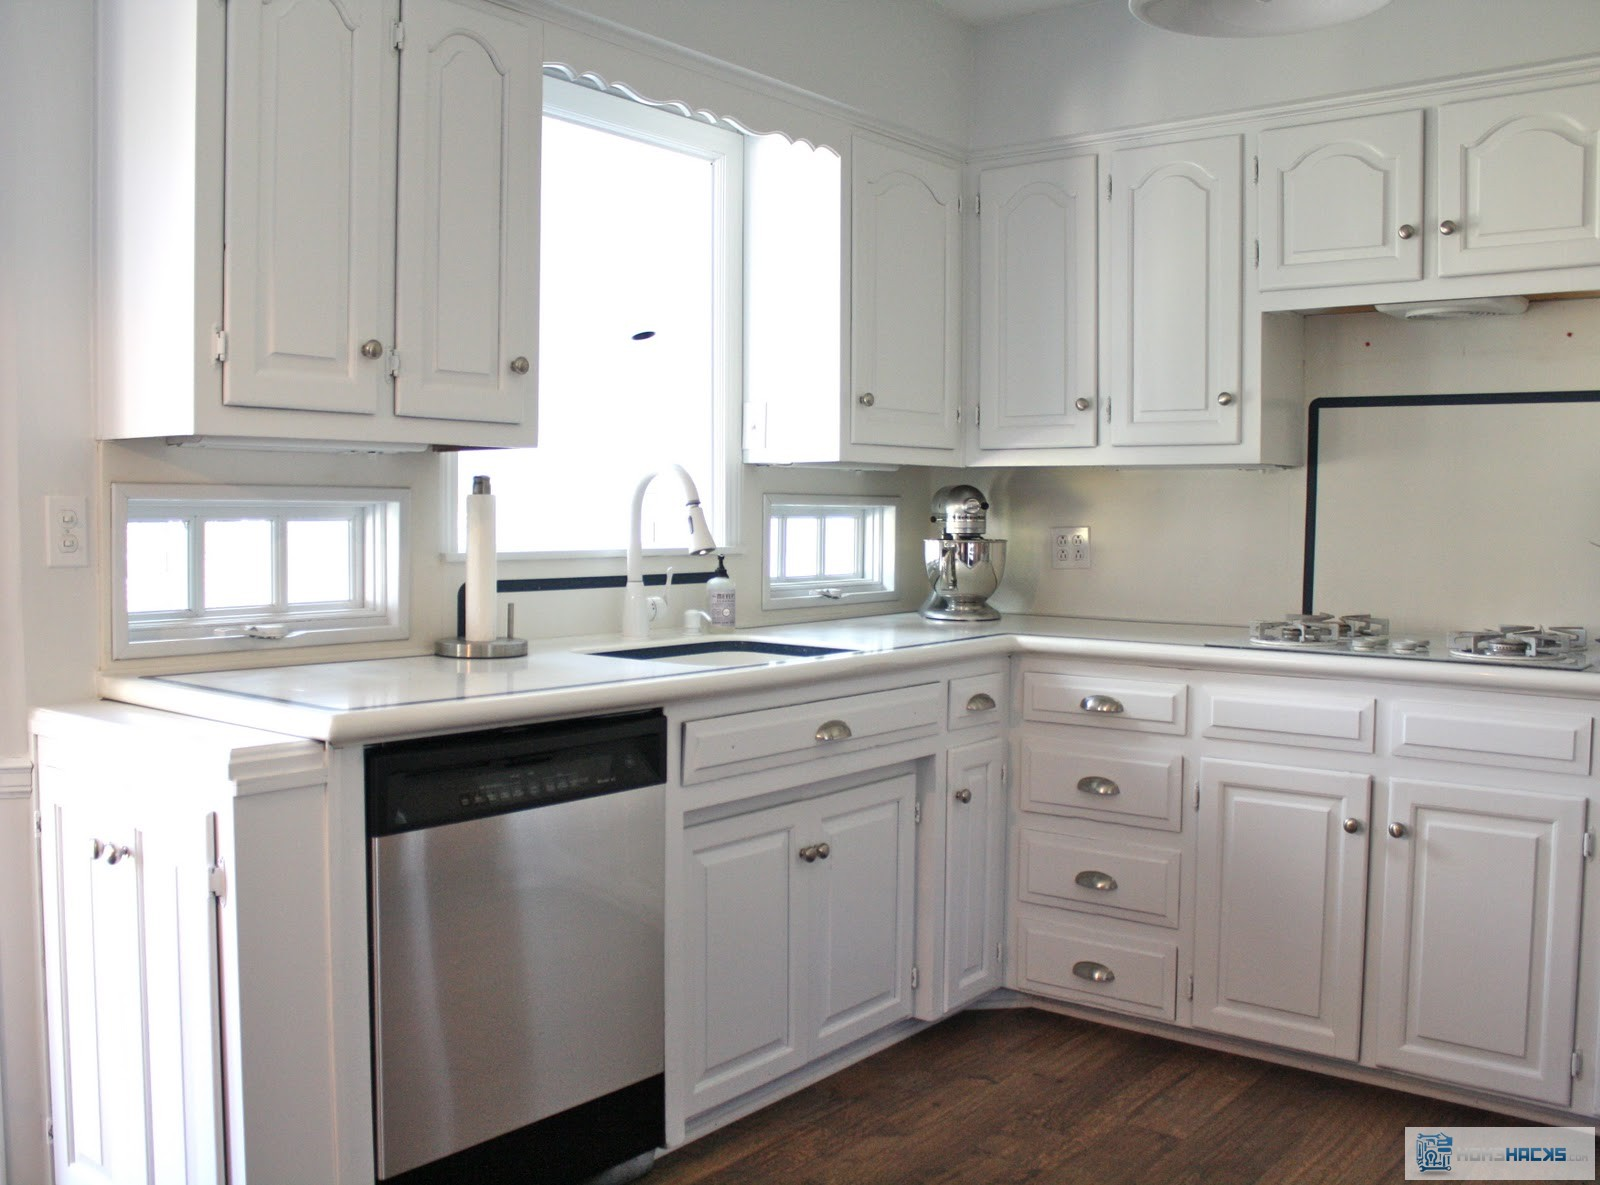 Stainless steel contact paper dishwasher makeover homehacks for Kitchen colors with white cabinets with papier polaroid